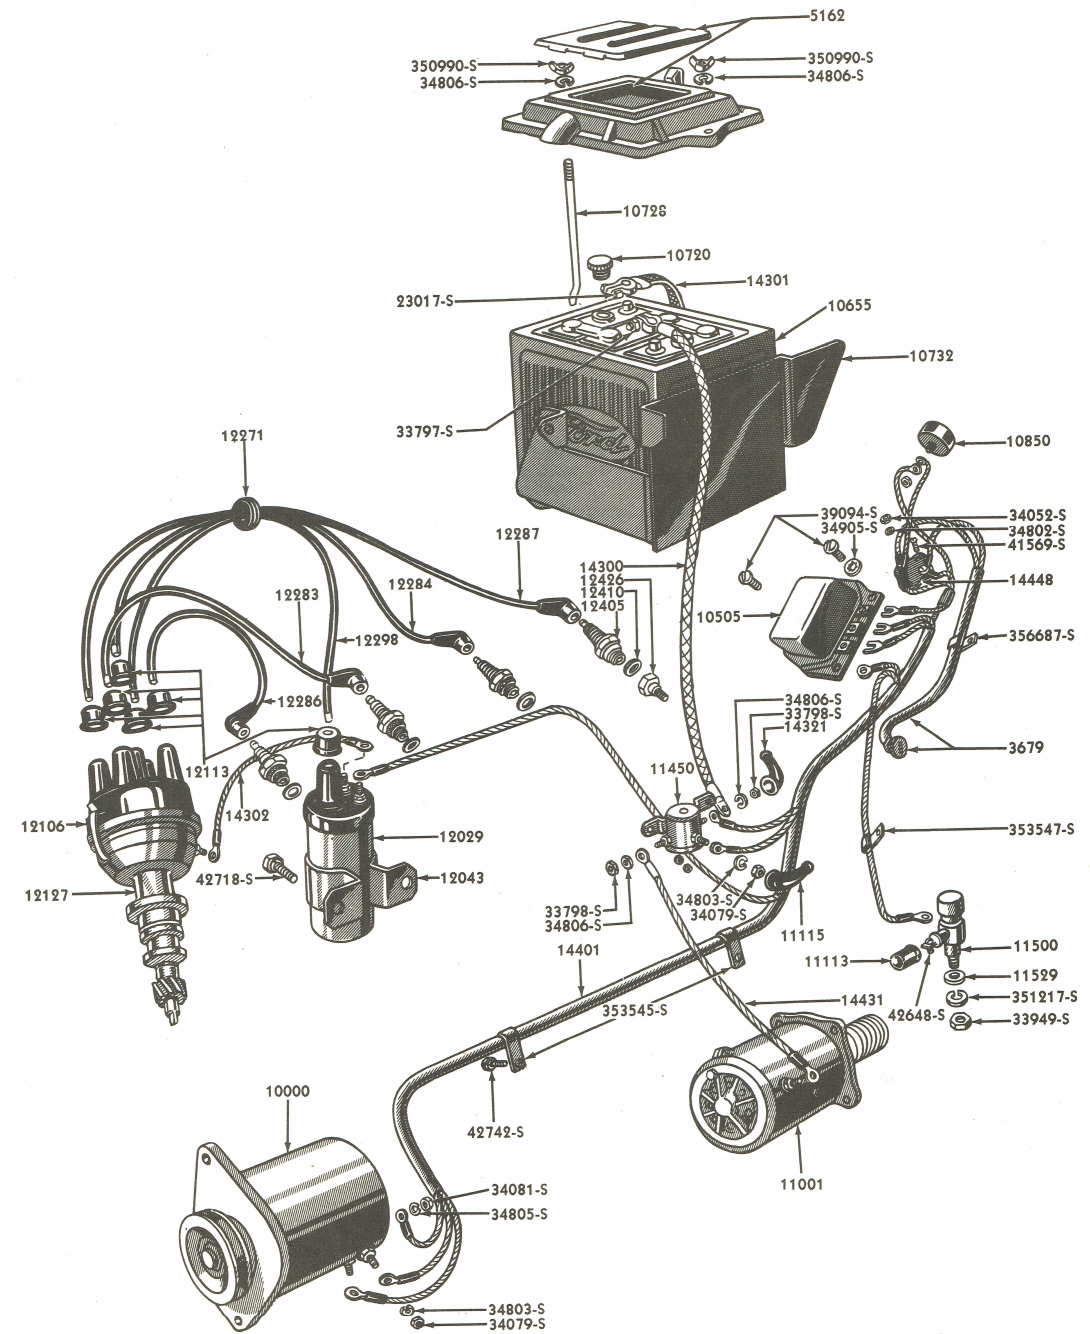 Image Ford Wiring Diagram Ford Naa And Jubilee Wiring Diagram Ford Wiring Diagram Bookingritzcarlton Info Ford Tractors Ford Tractor Parts